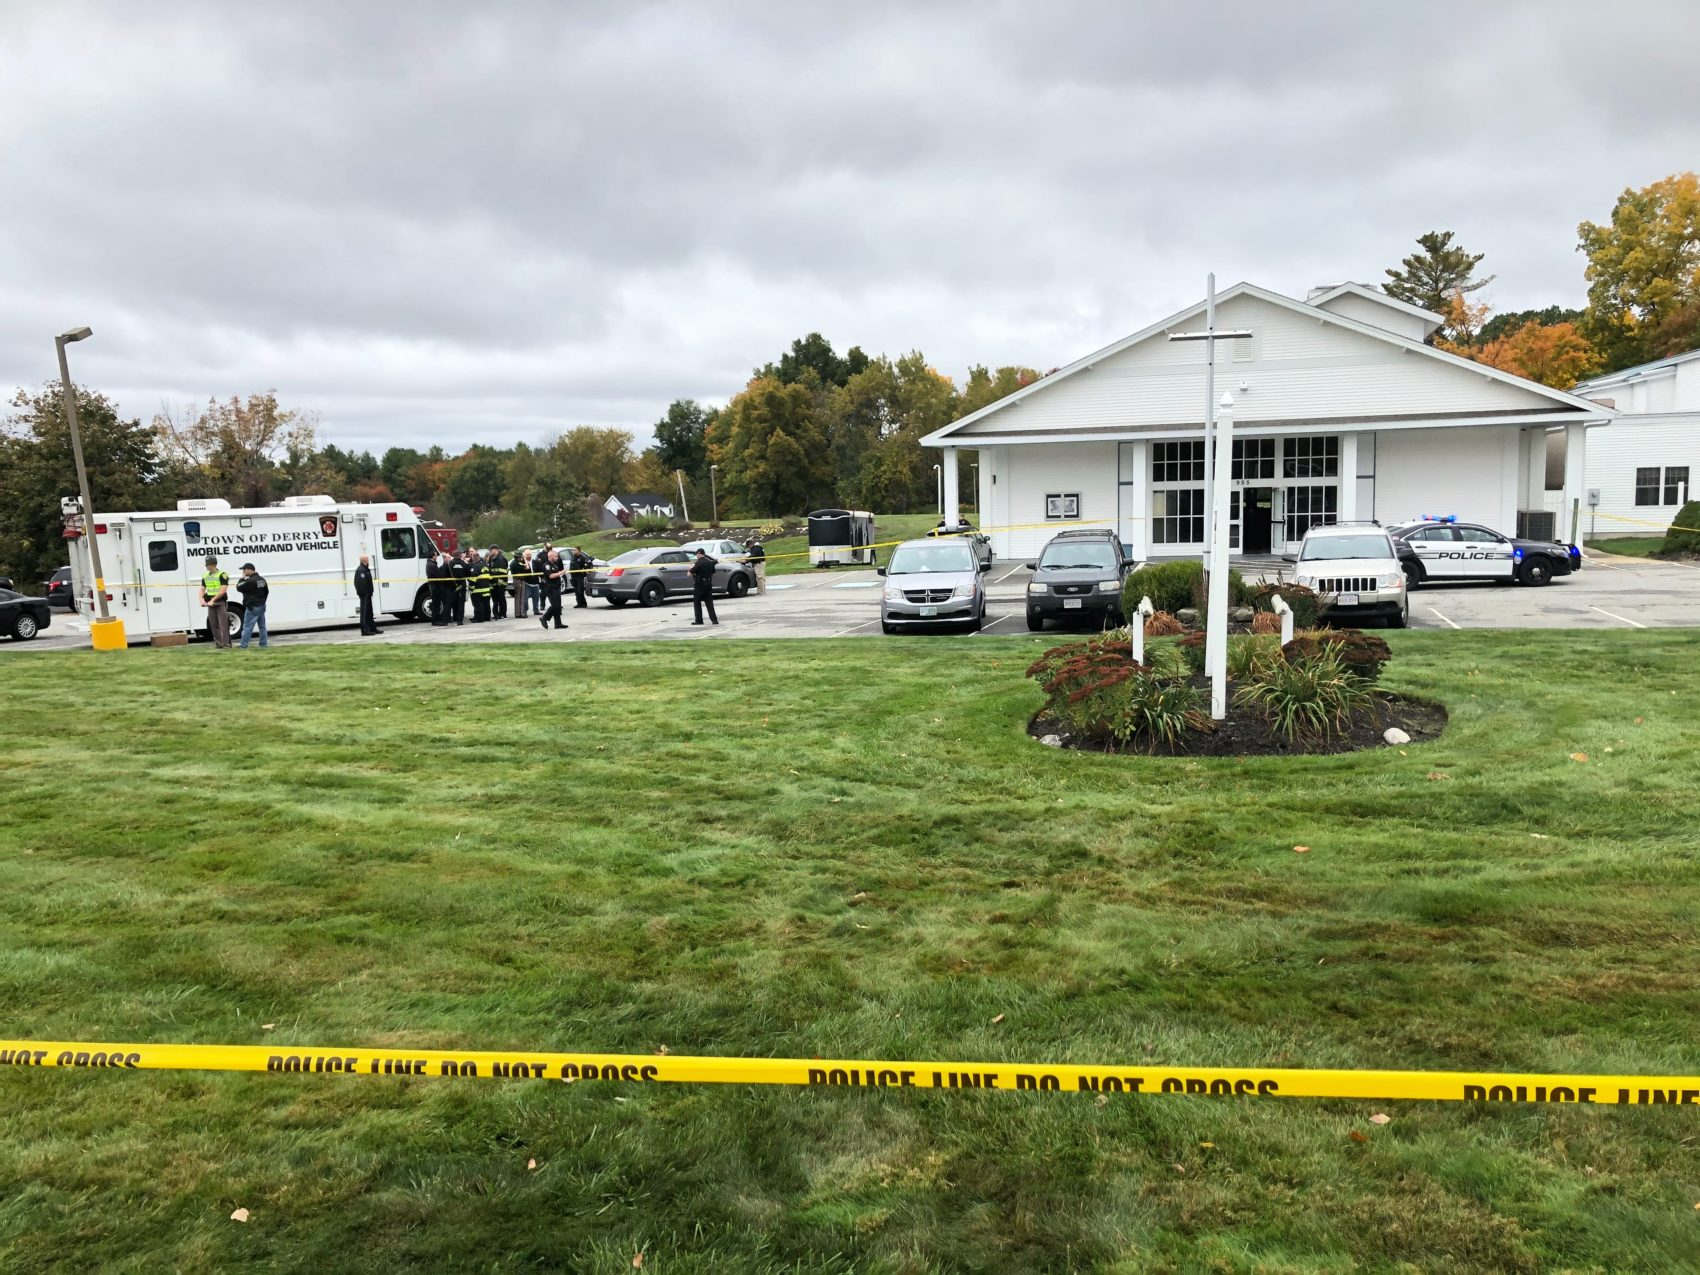 Shooting during wedding at New Hampshire church leaves two wounded